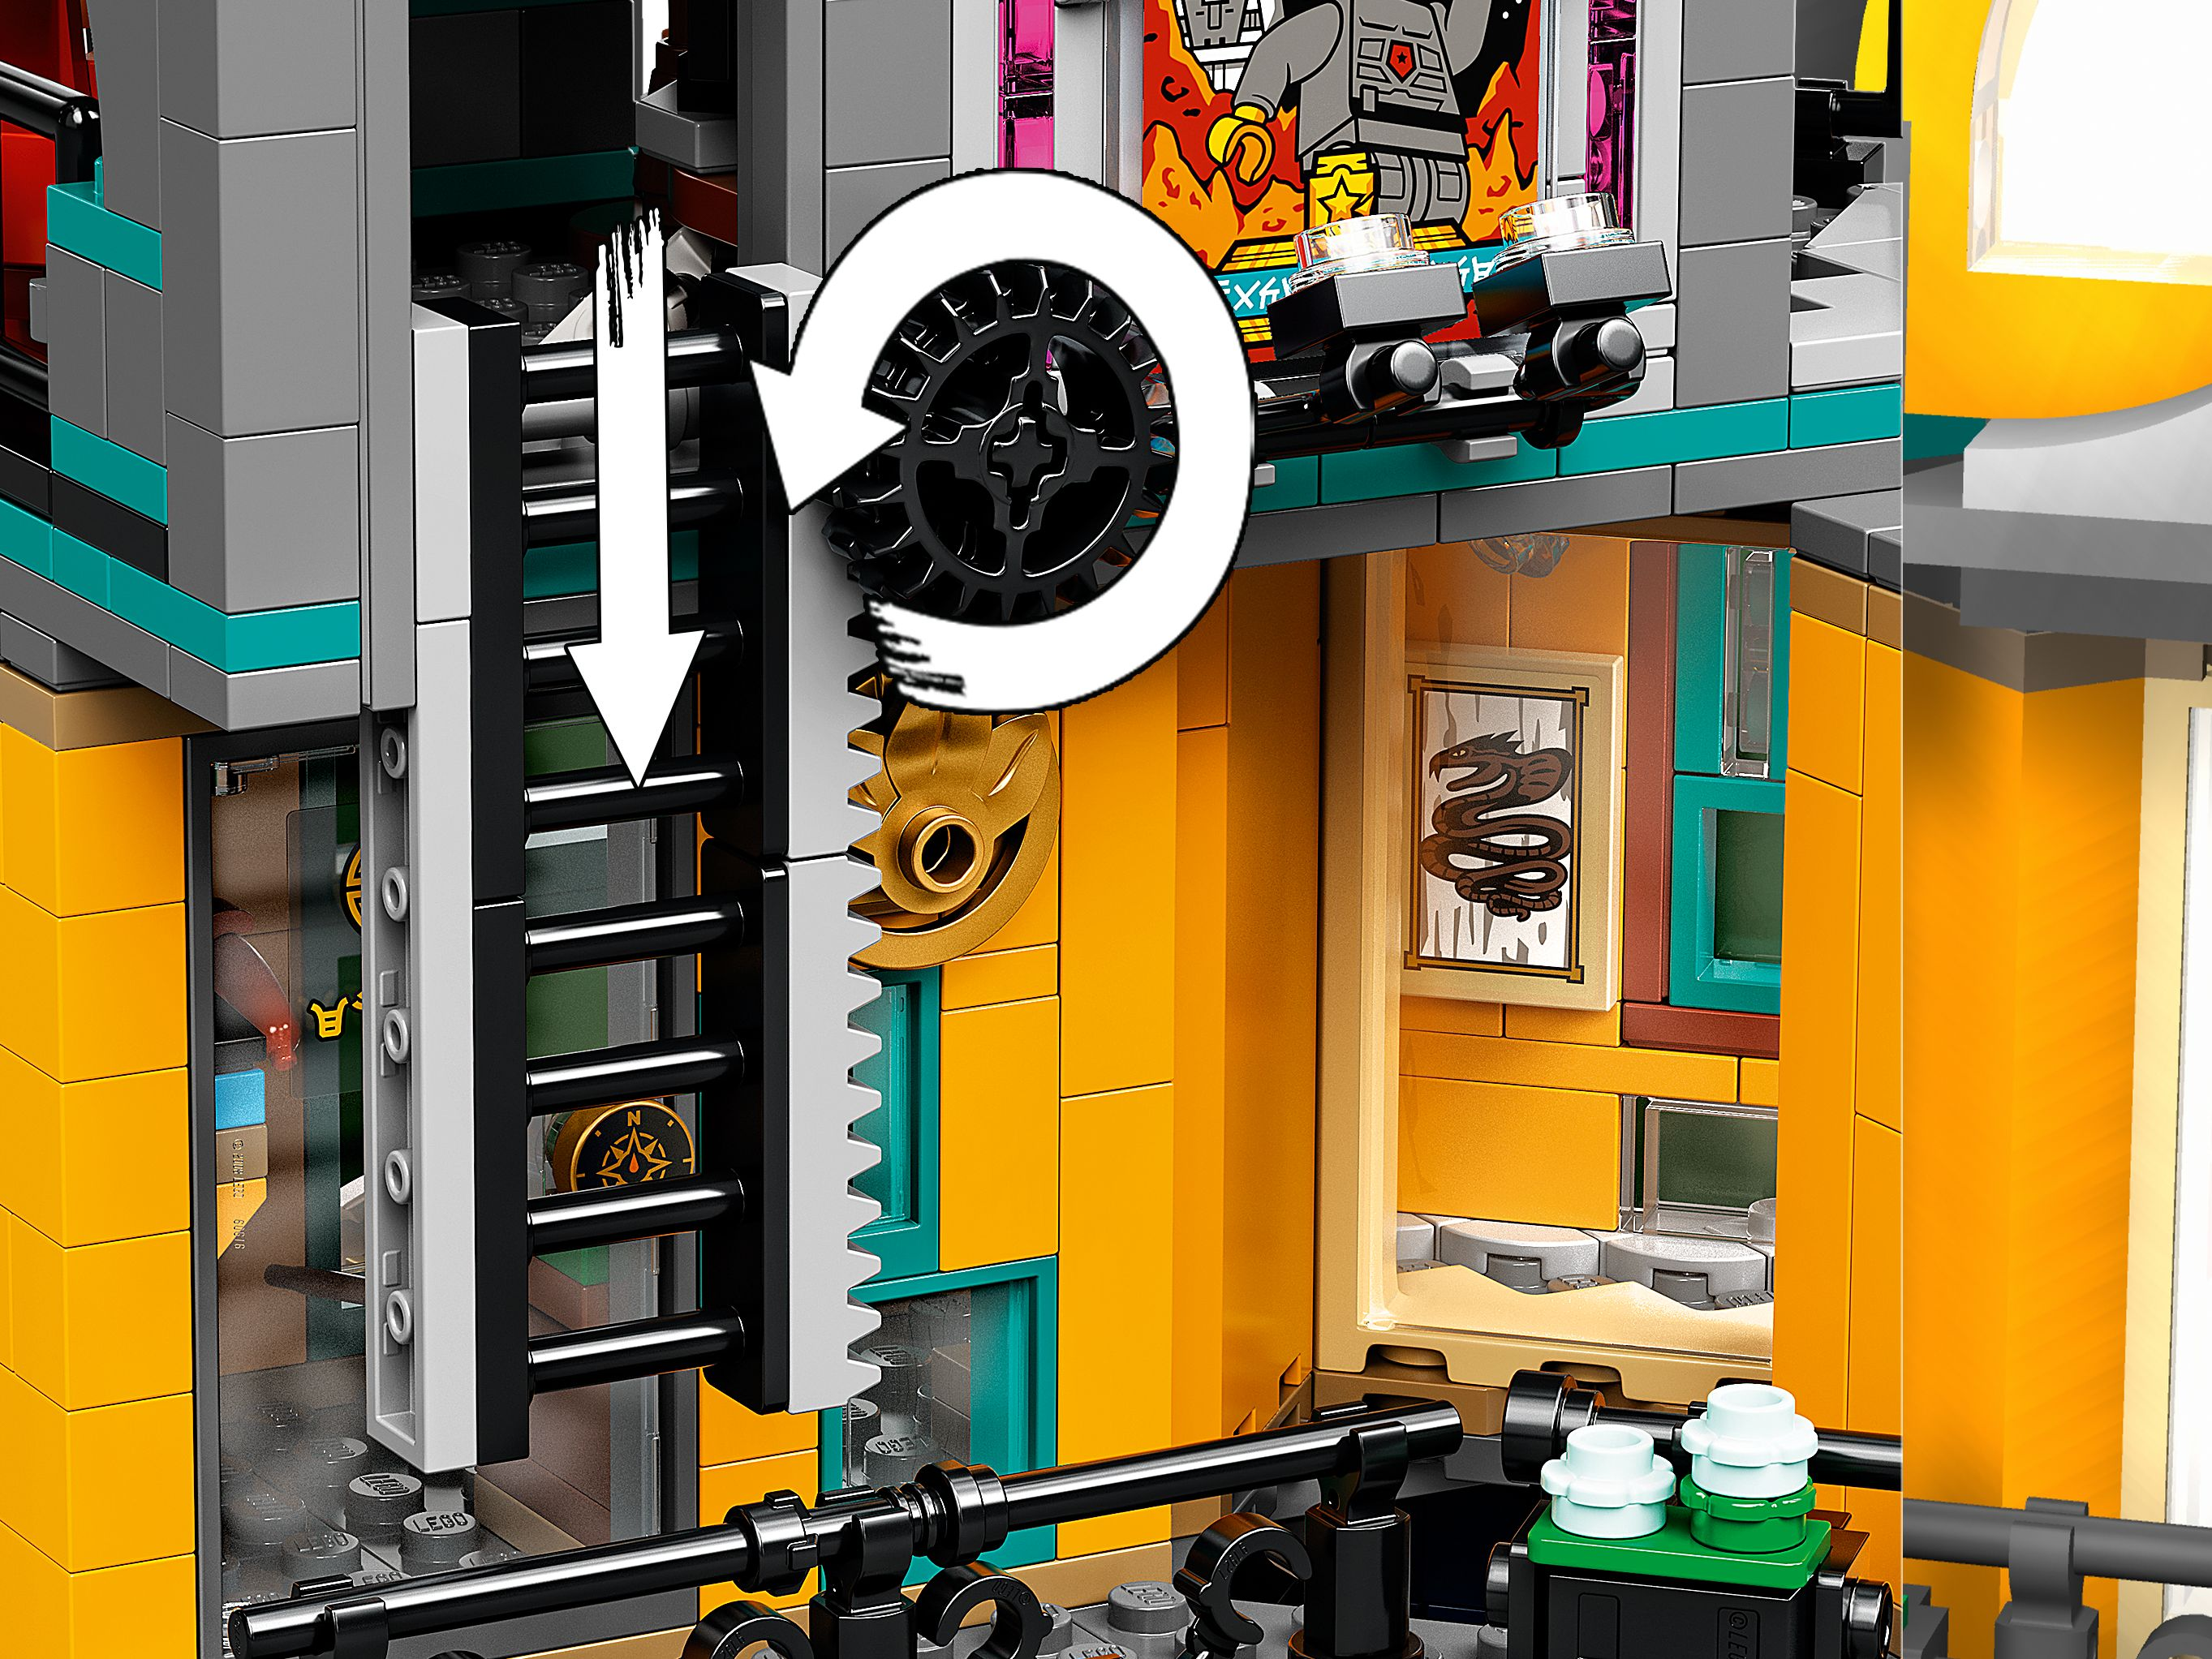 LEGO The LEGO Ninjago Movie 71741 Die Gärten von Ninjago City LEGO_71741_alt8.jpg